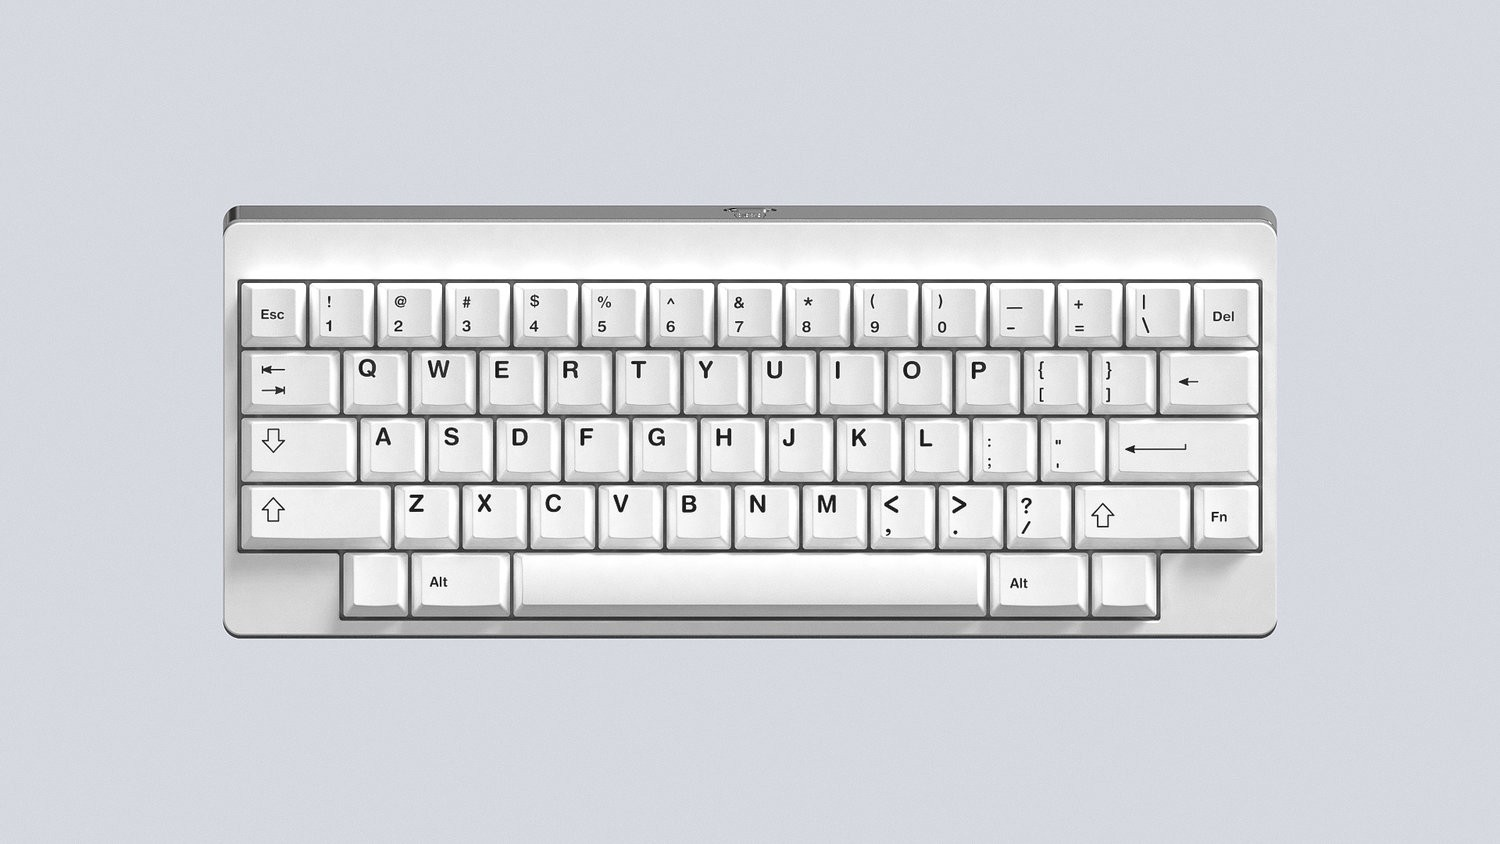 Thoughts on Mechanical Keyboards and stabilizers - Joe Chow